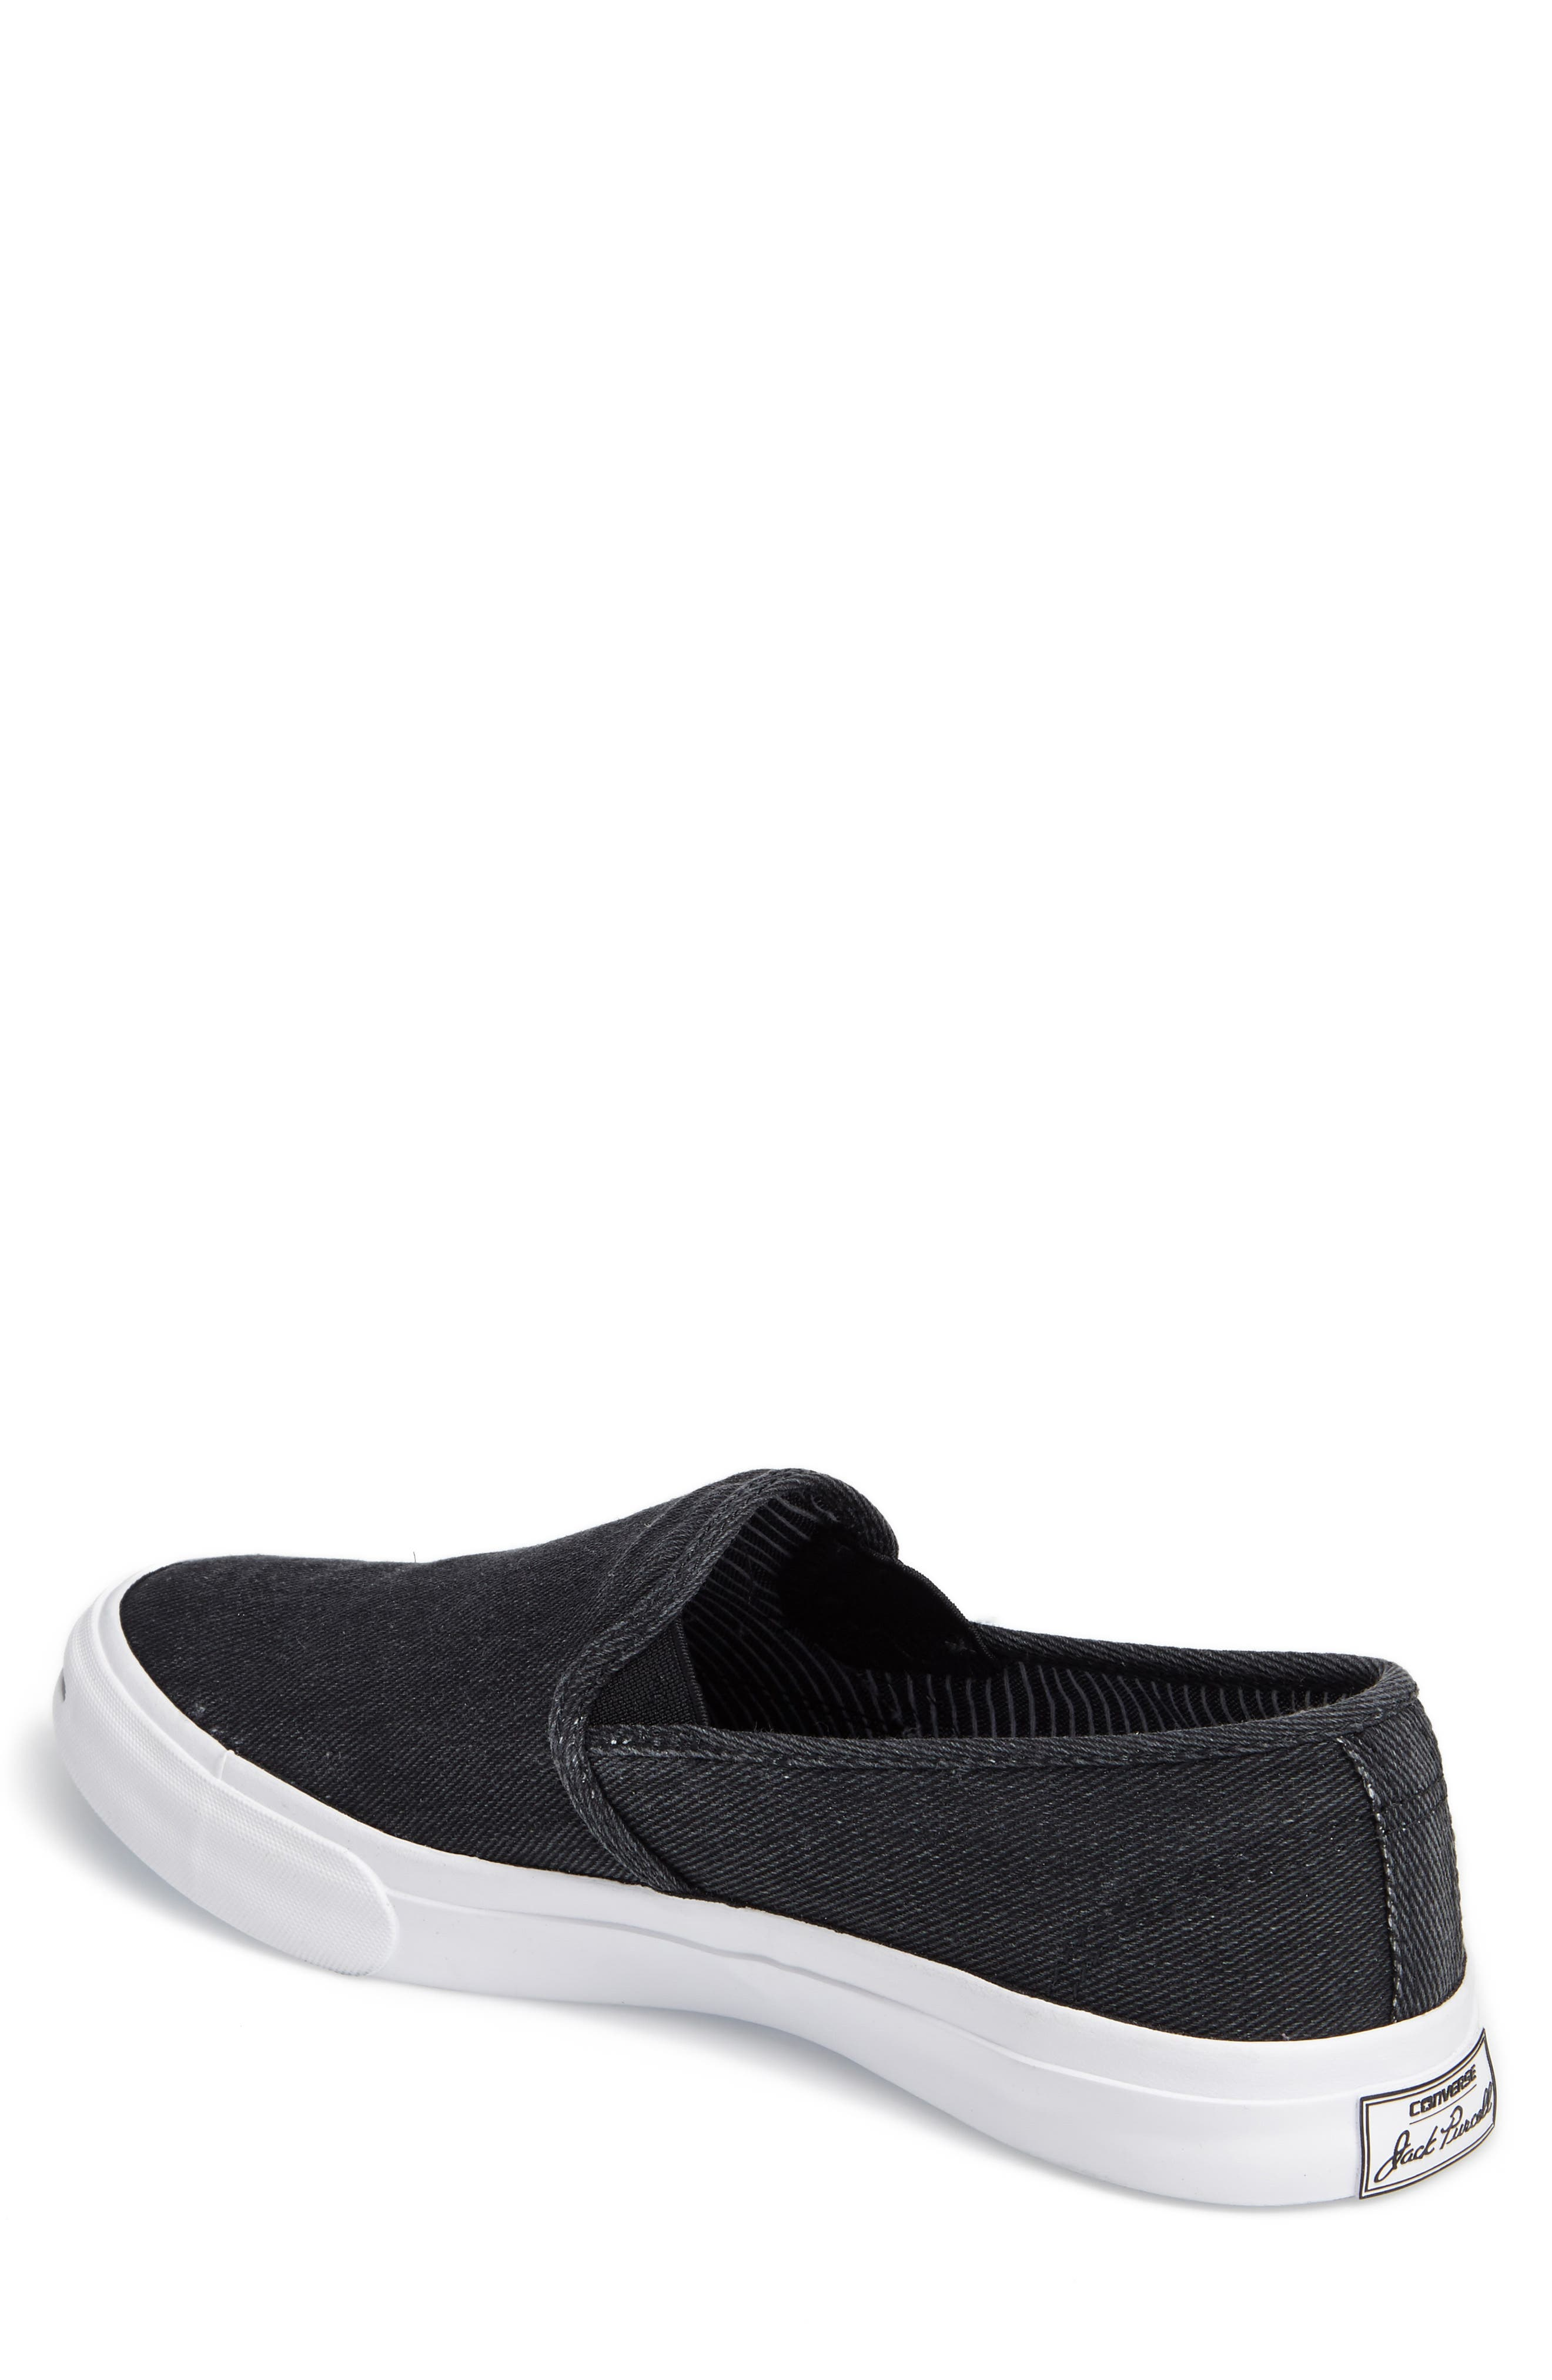 Jack Purcell II Slip-On,                             Alternate thumbnail 7, color,